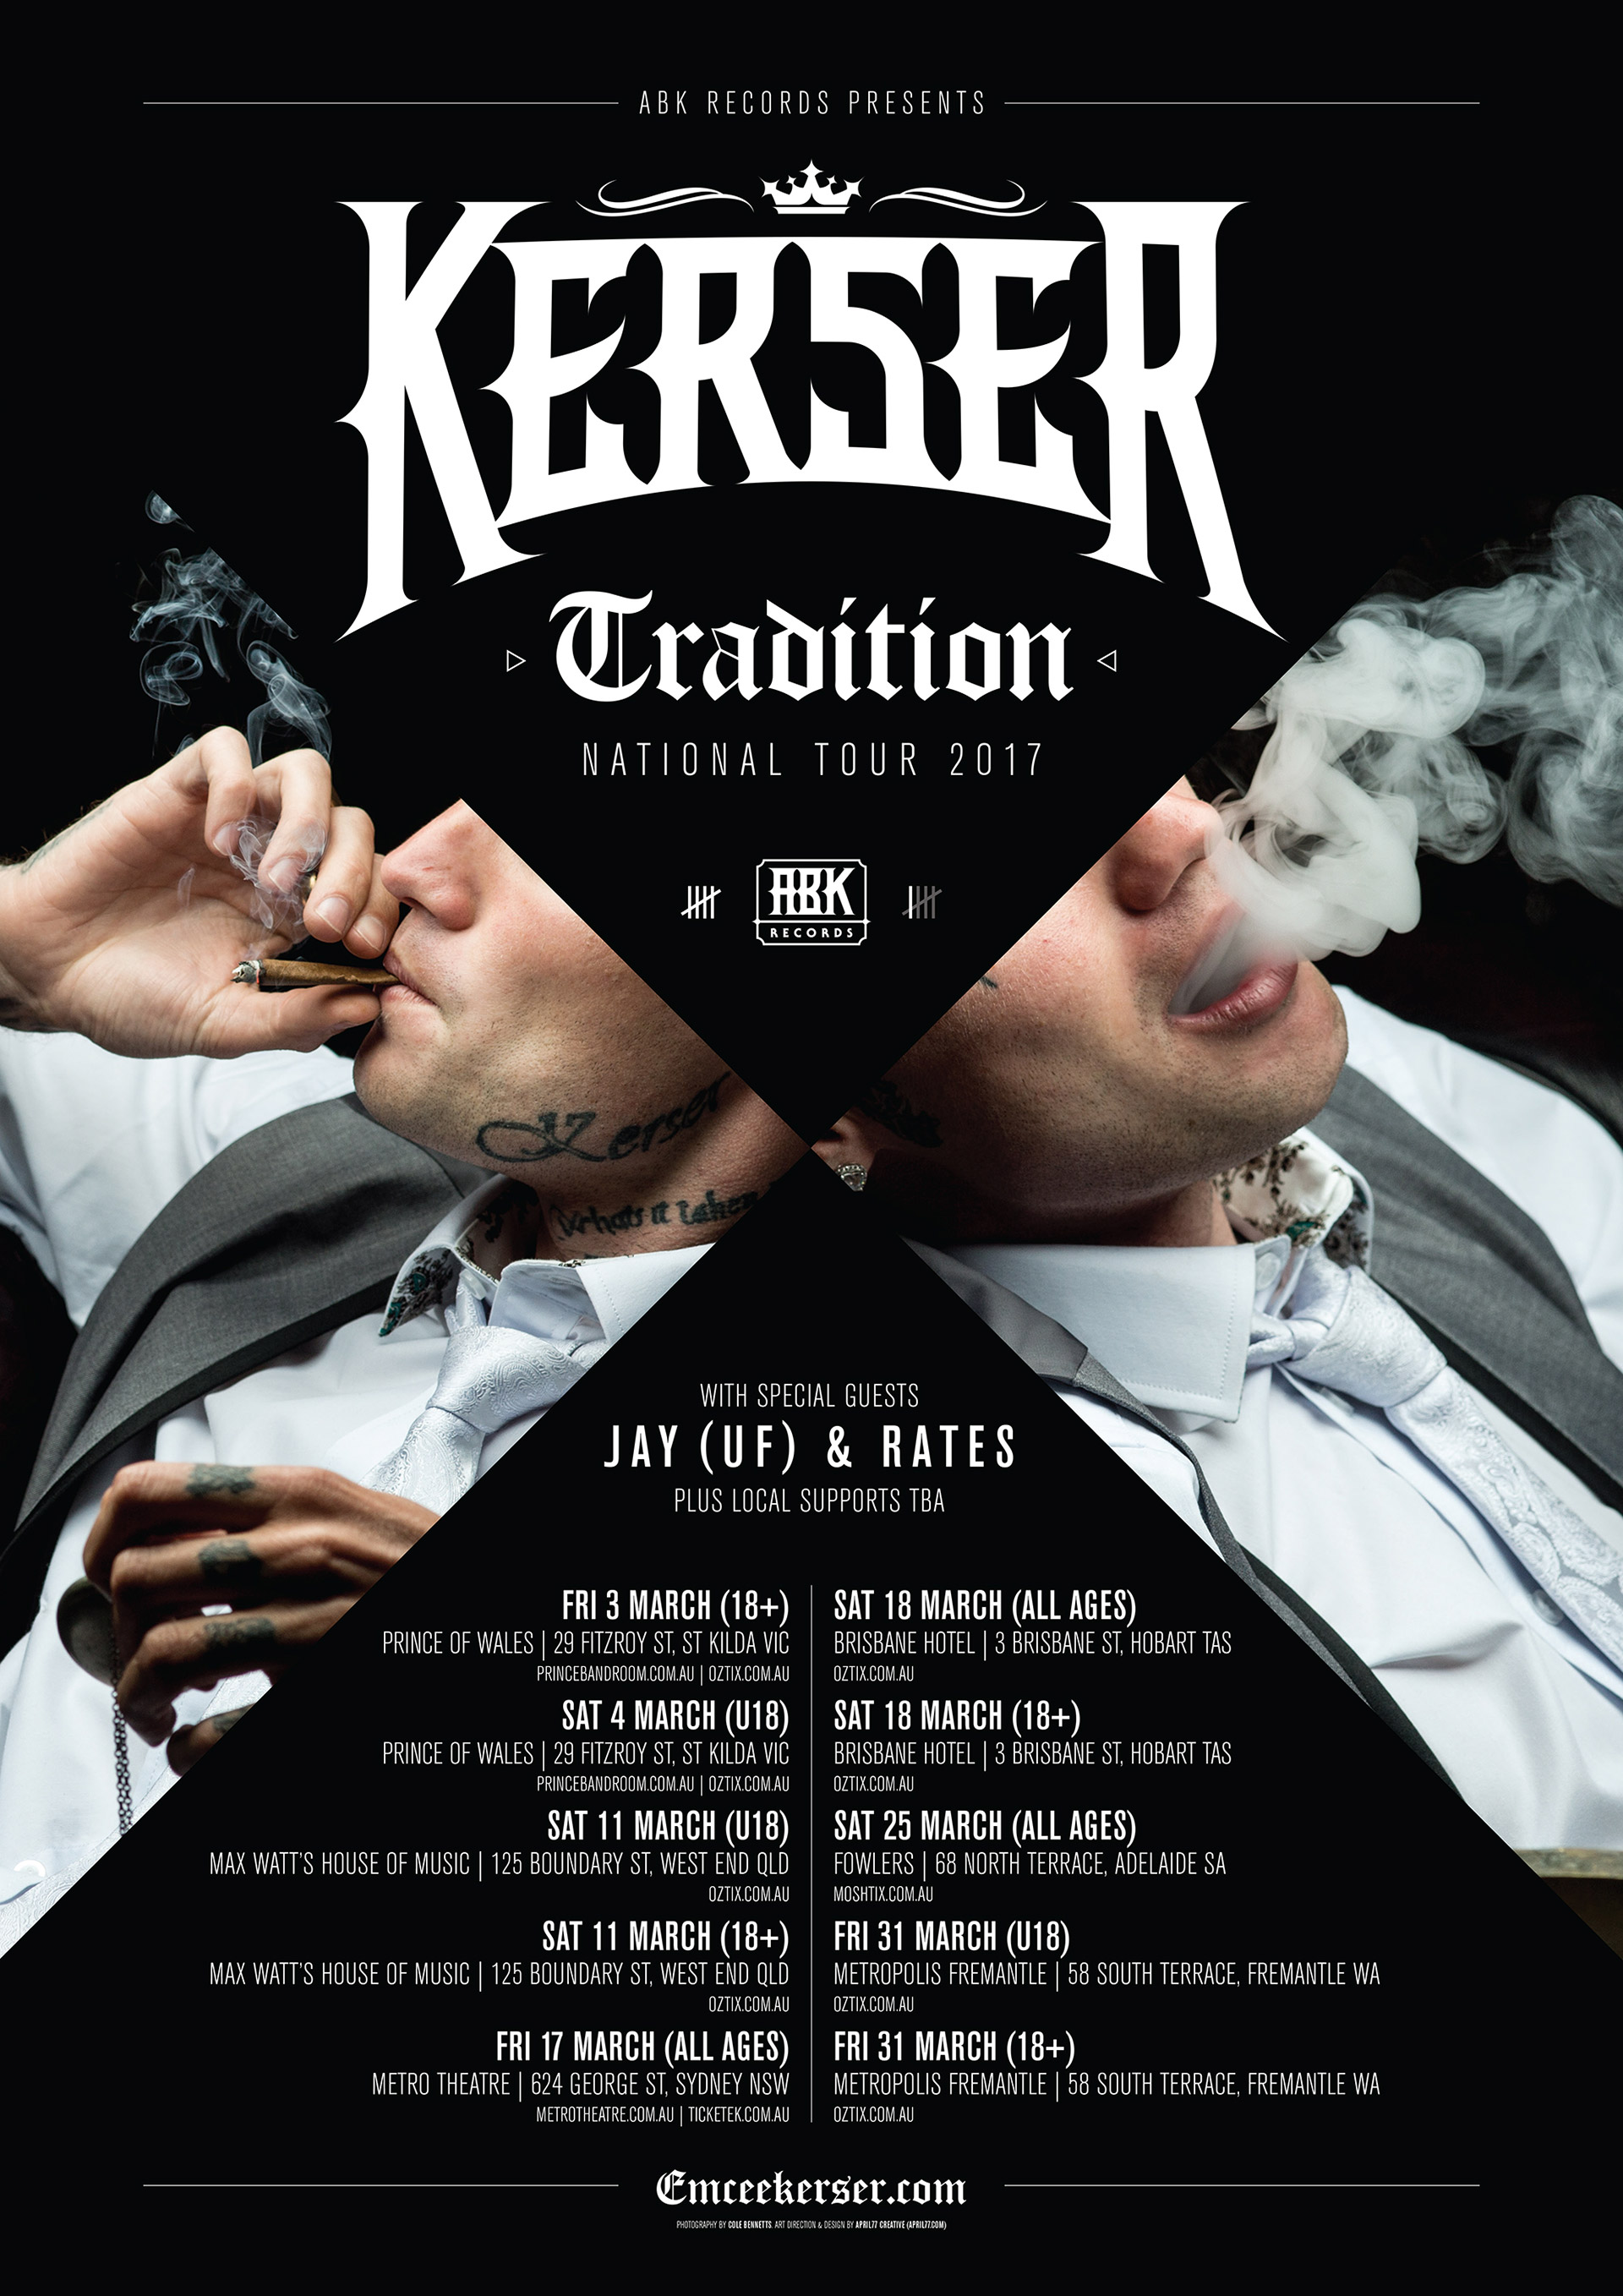 kers-tradition-tour-1920